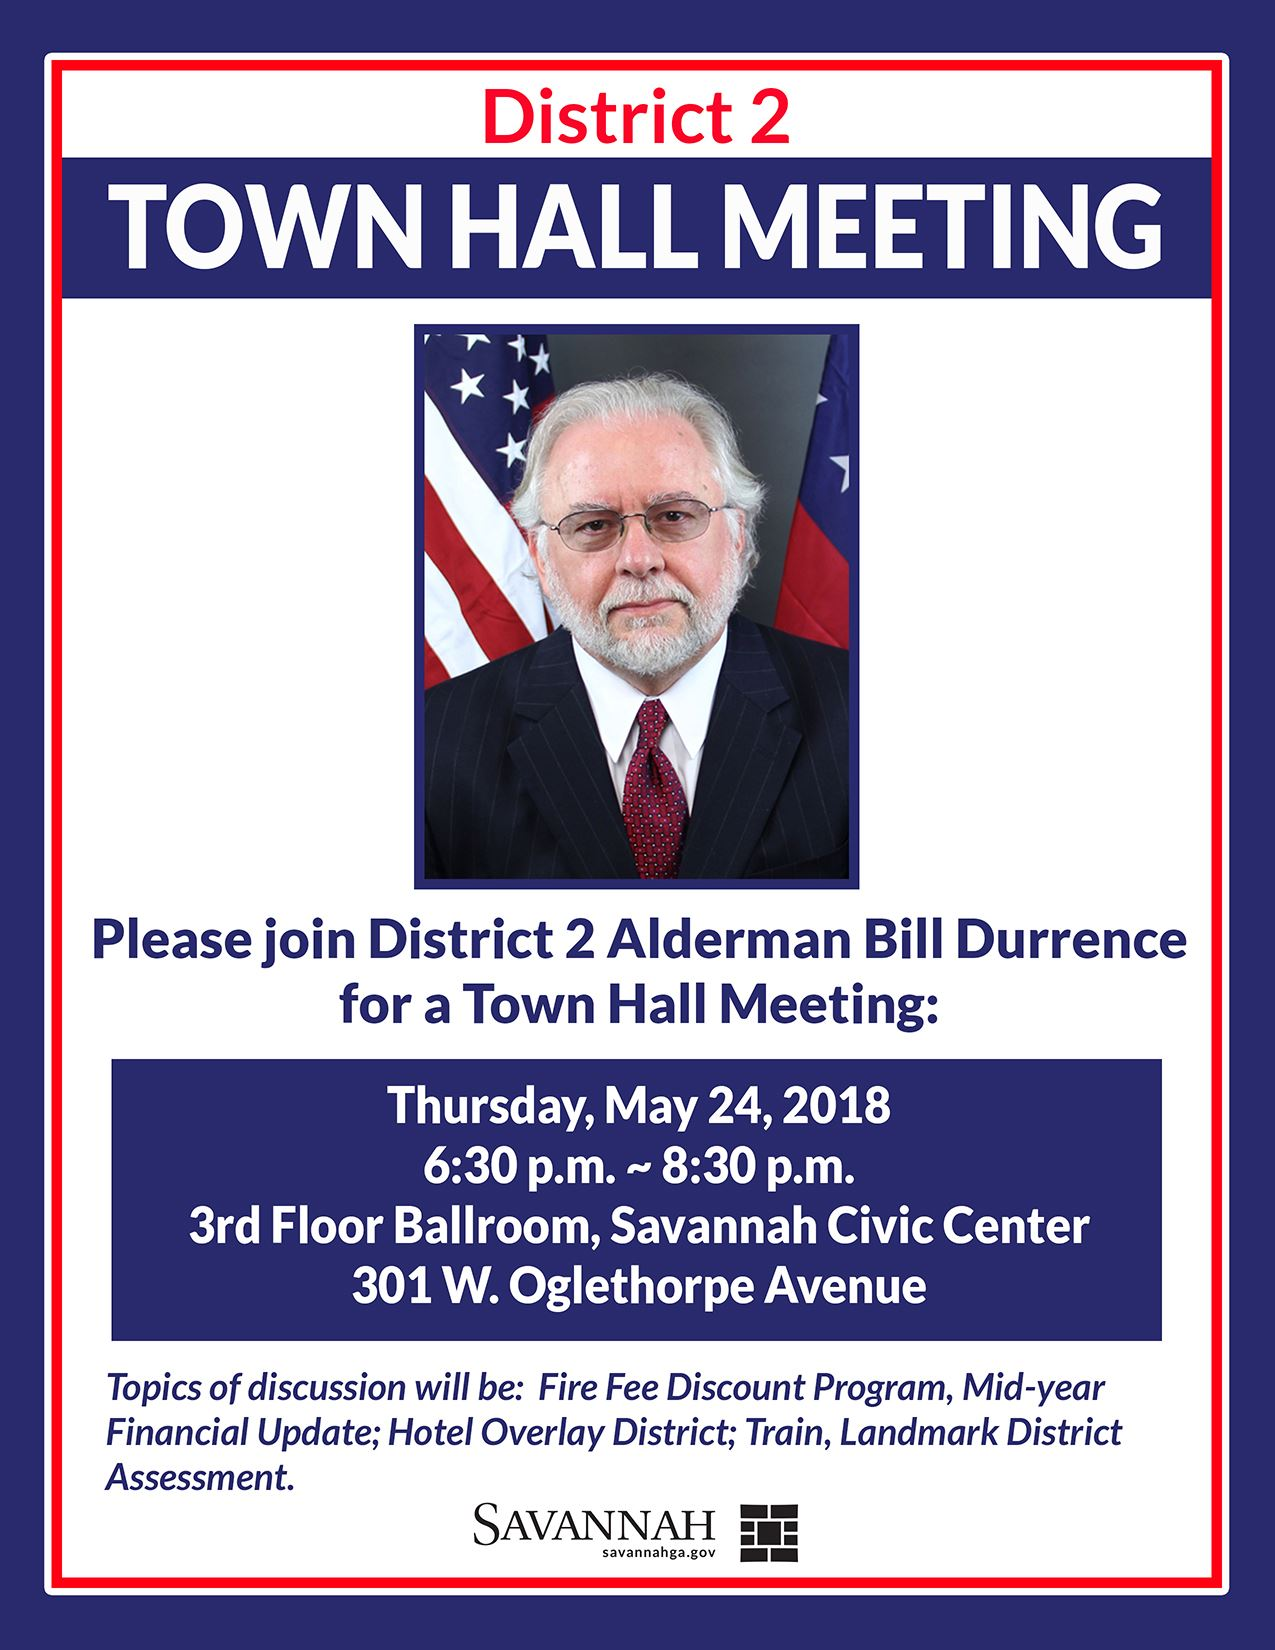 District 2 Town Hall Meeting